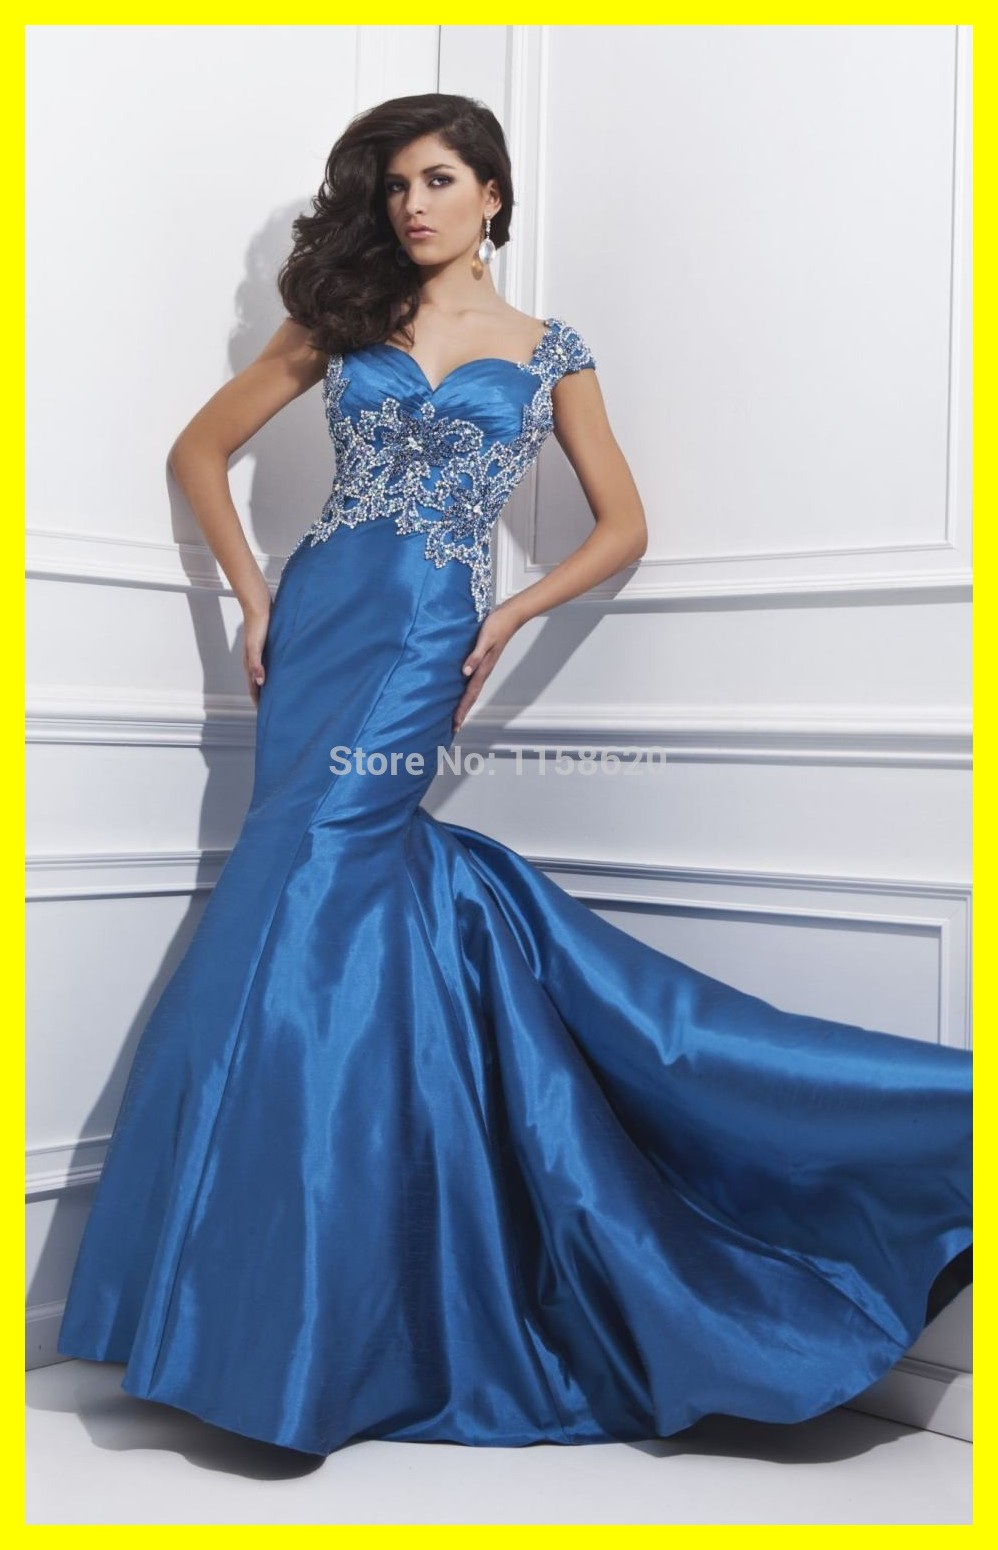 Maternity evening dresses australia choice image braidsmaid dresses to wear with leggings picture more detailed picture evening gown dress plus size gowns dresses ombrellifo Images